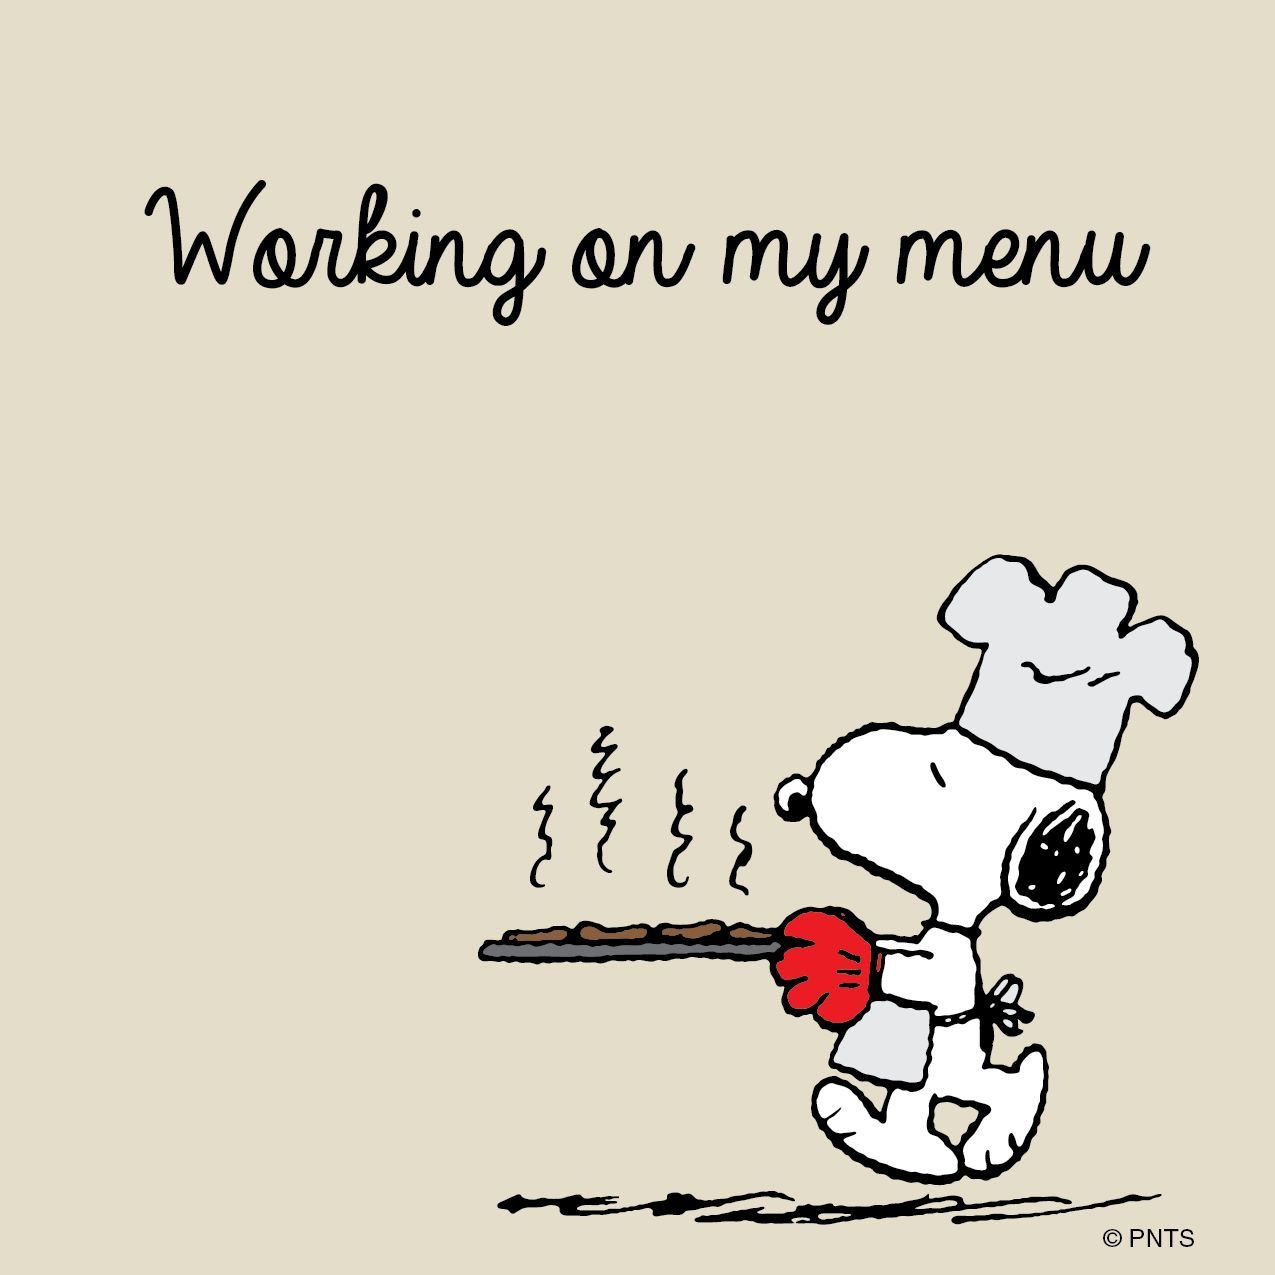 Pin By Linda Jo Dewey On Comics Daily Snoopy Snoopy Love Snoopy And Woodstock